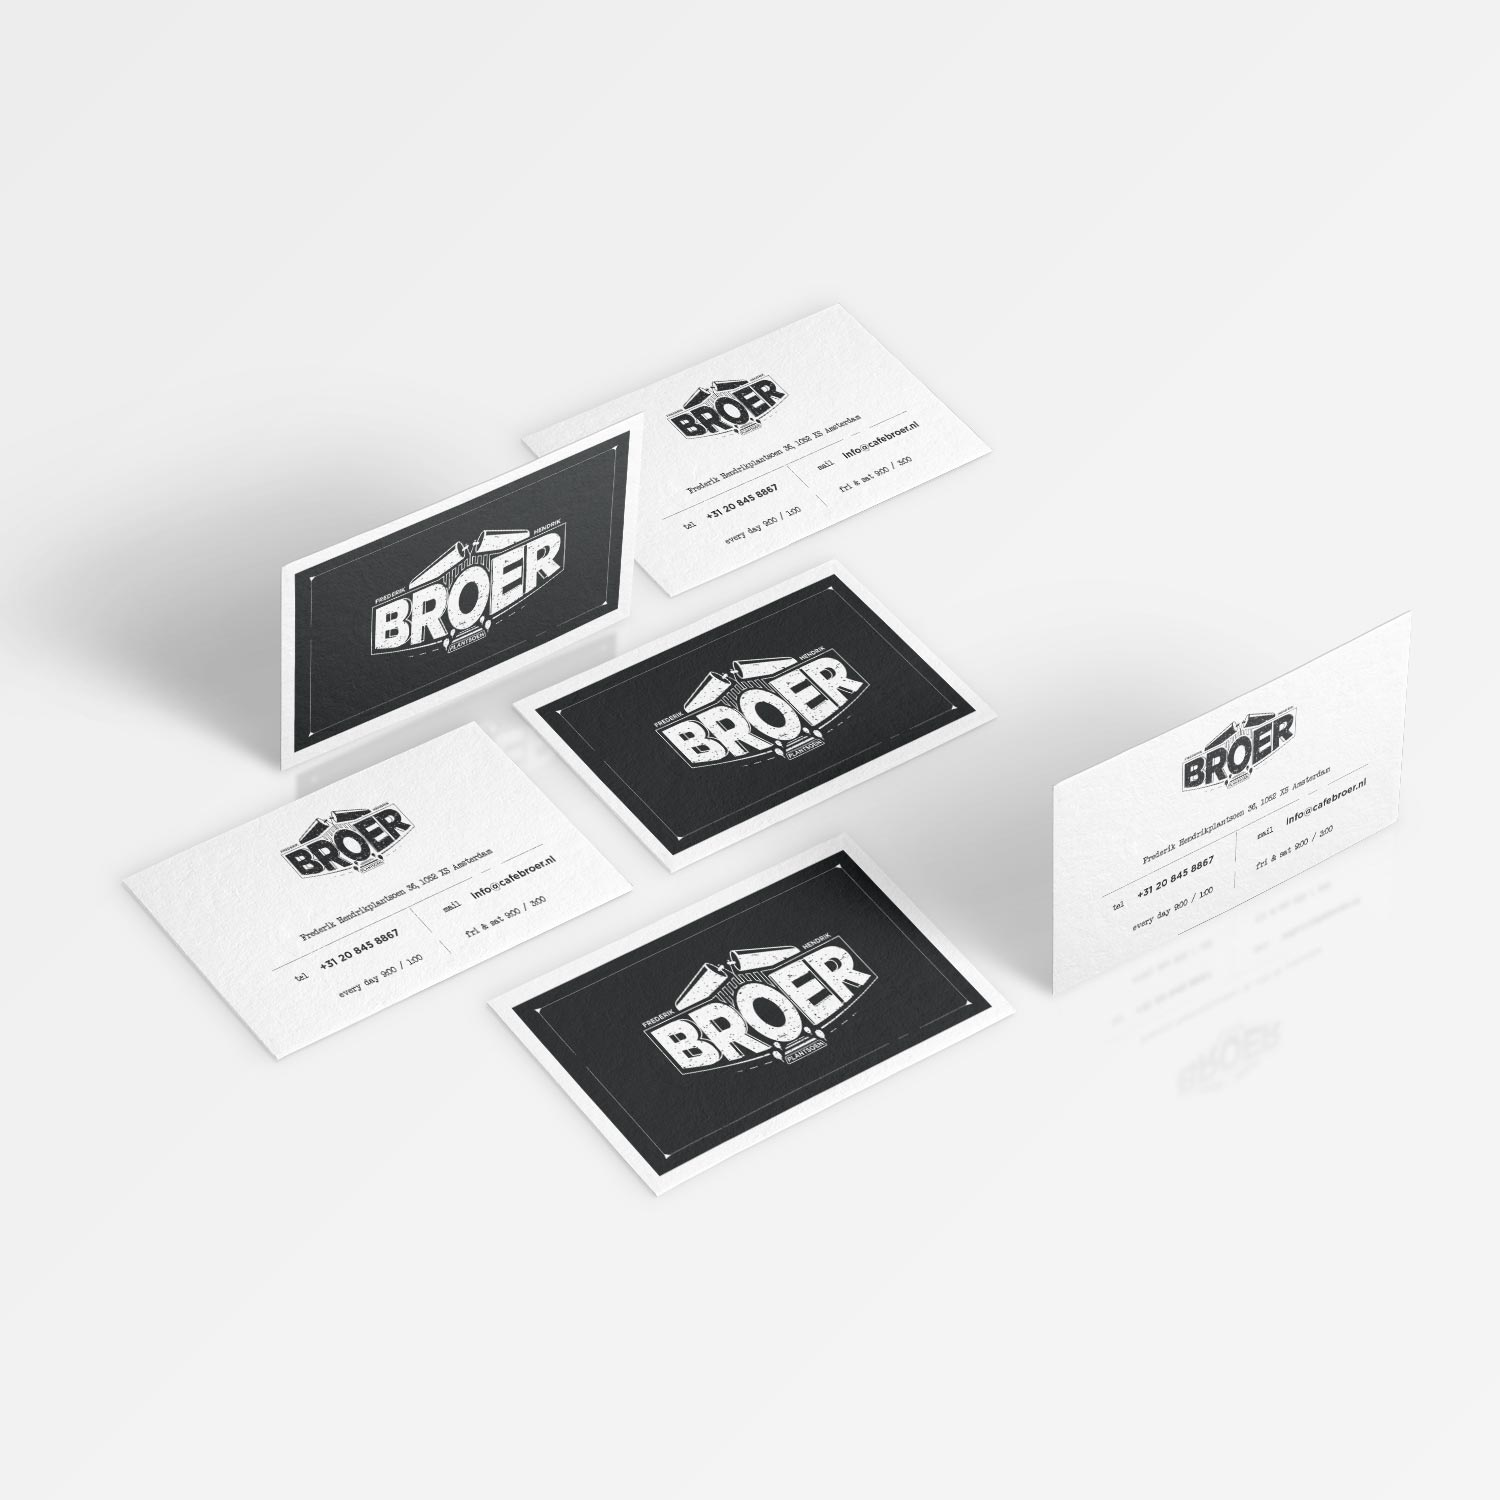 Cafe Broer Business Cards